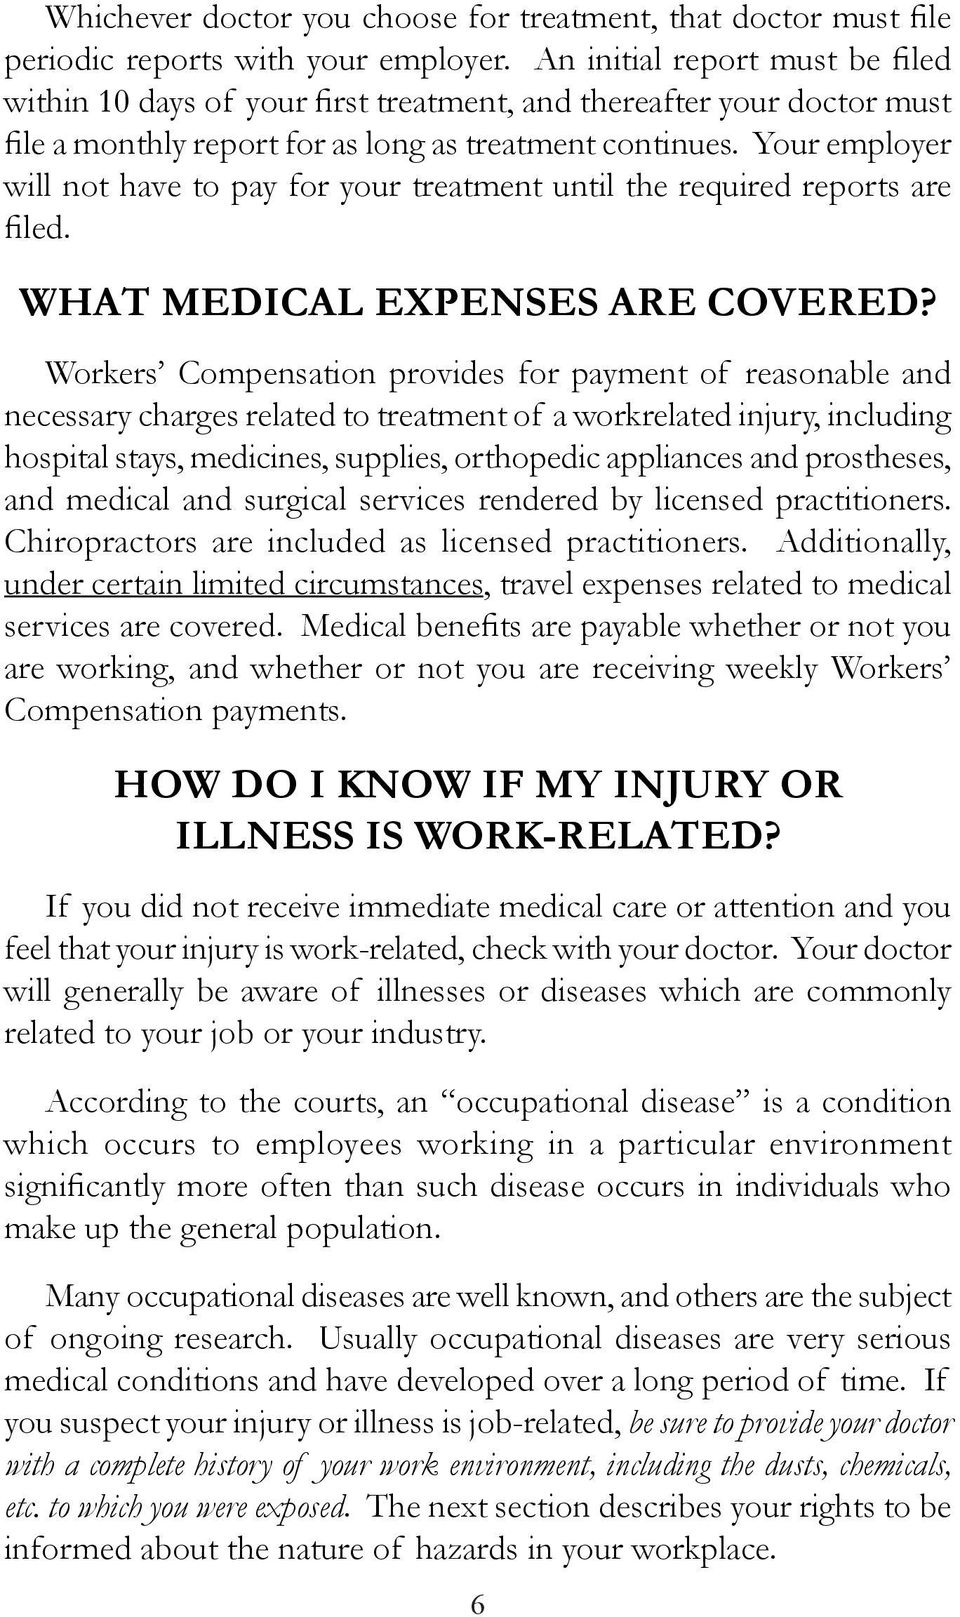 Your employer will not have to pay for your treatment until the required reports are filed. WHAT MEDICAL EXPENSES ARE COVERED?